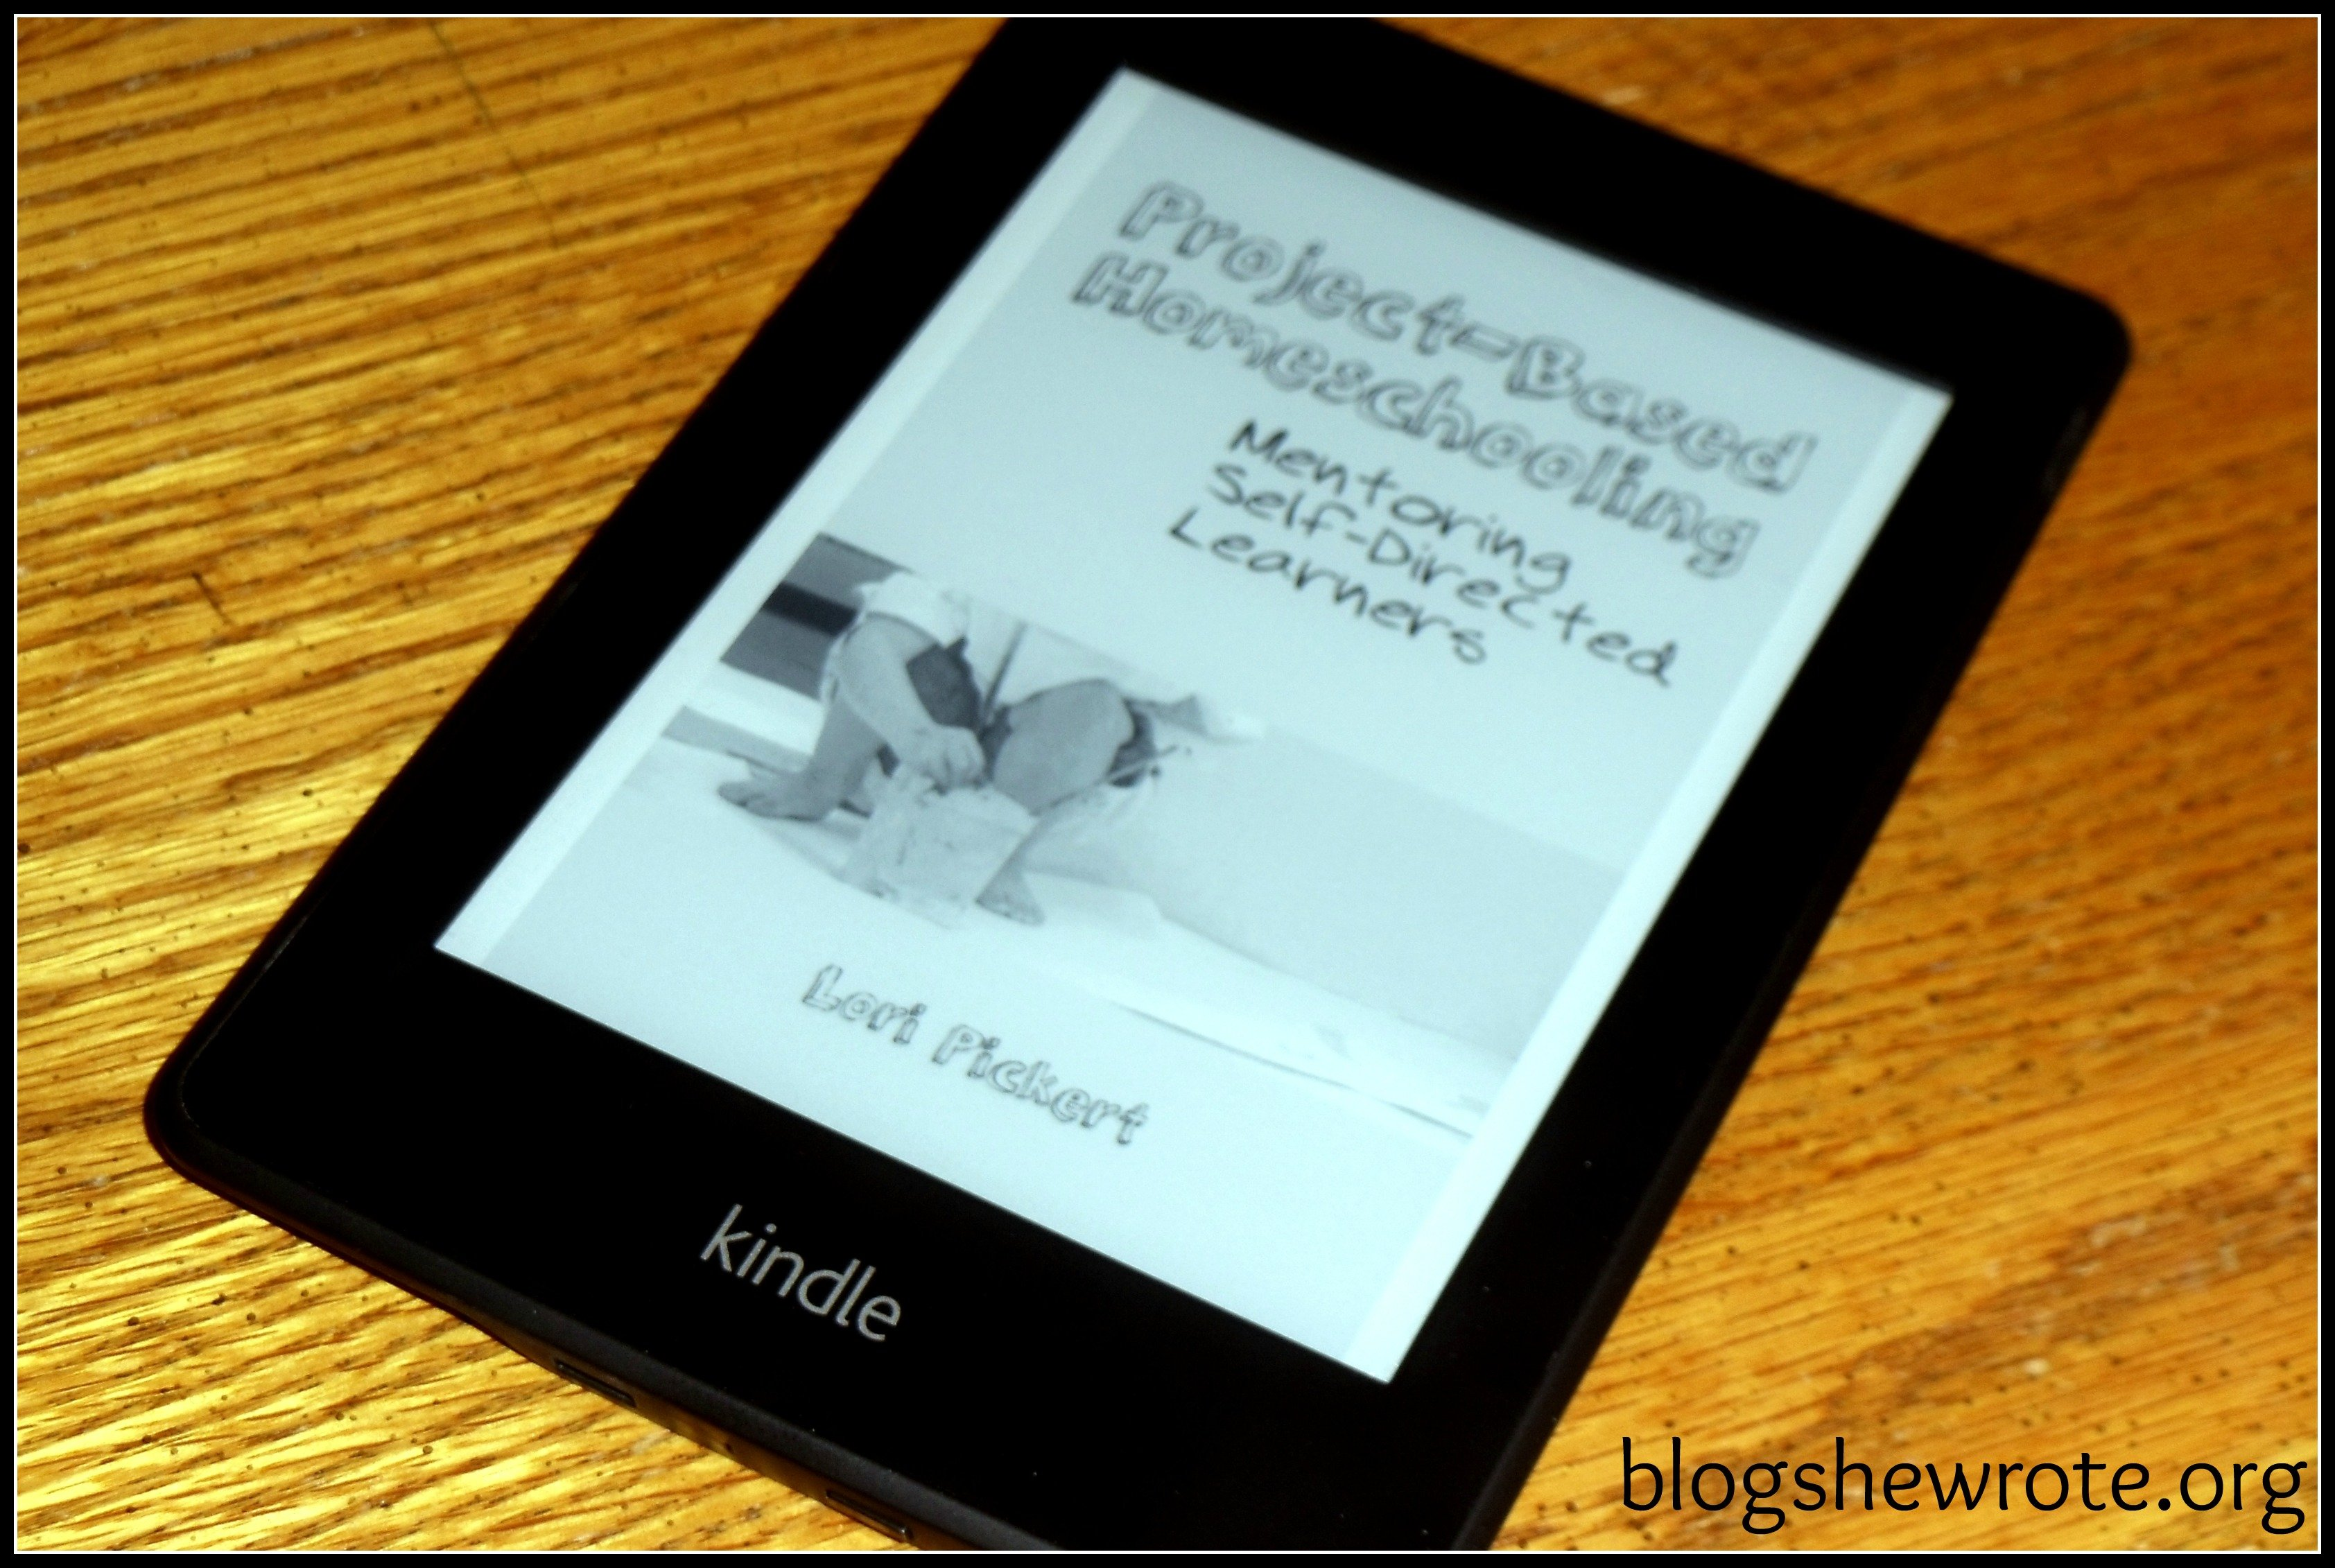 Blog She Wrote: Books That Have Most Shaped Our Homeschool